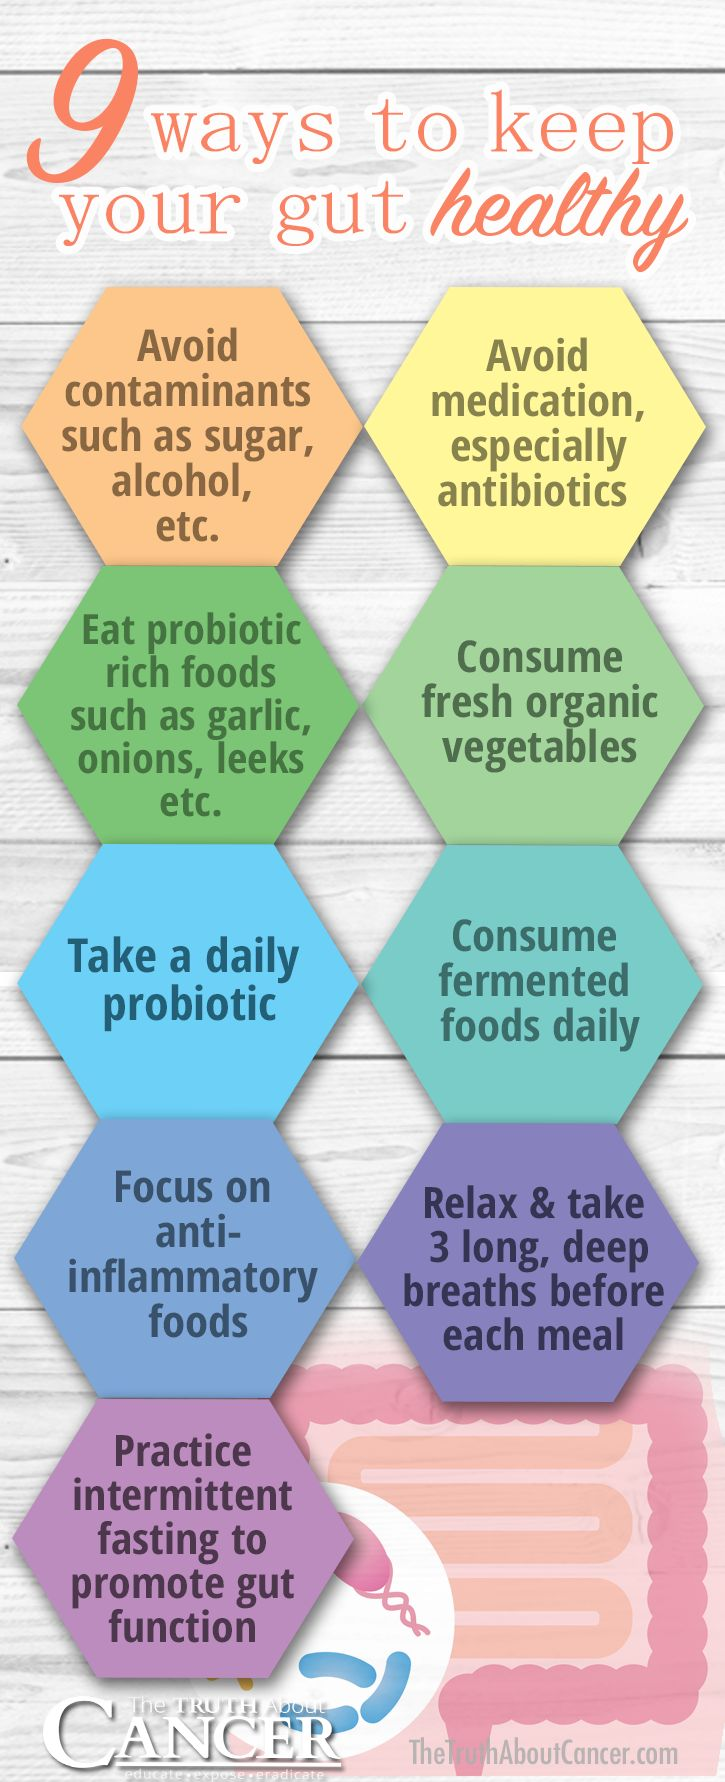 Infections of the gut such as leaky gut syndrome and colitis induce carcinogenic activity from bacteria. Maintaining healthy conditions within the digestive tract is as easy as improving your digestion. Click on the image to finda list of strategies that can provide you with effective techniques to improve the health of your gut microflora and offer anti-cancer benefits to your whole body!